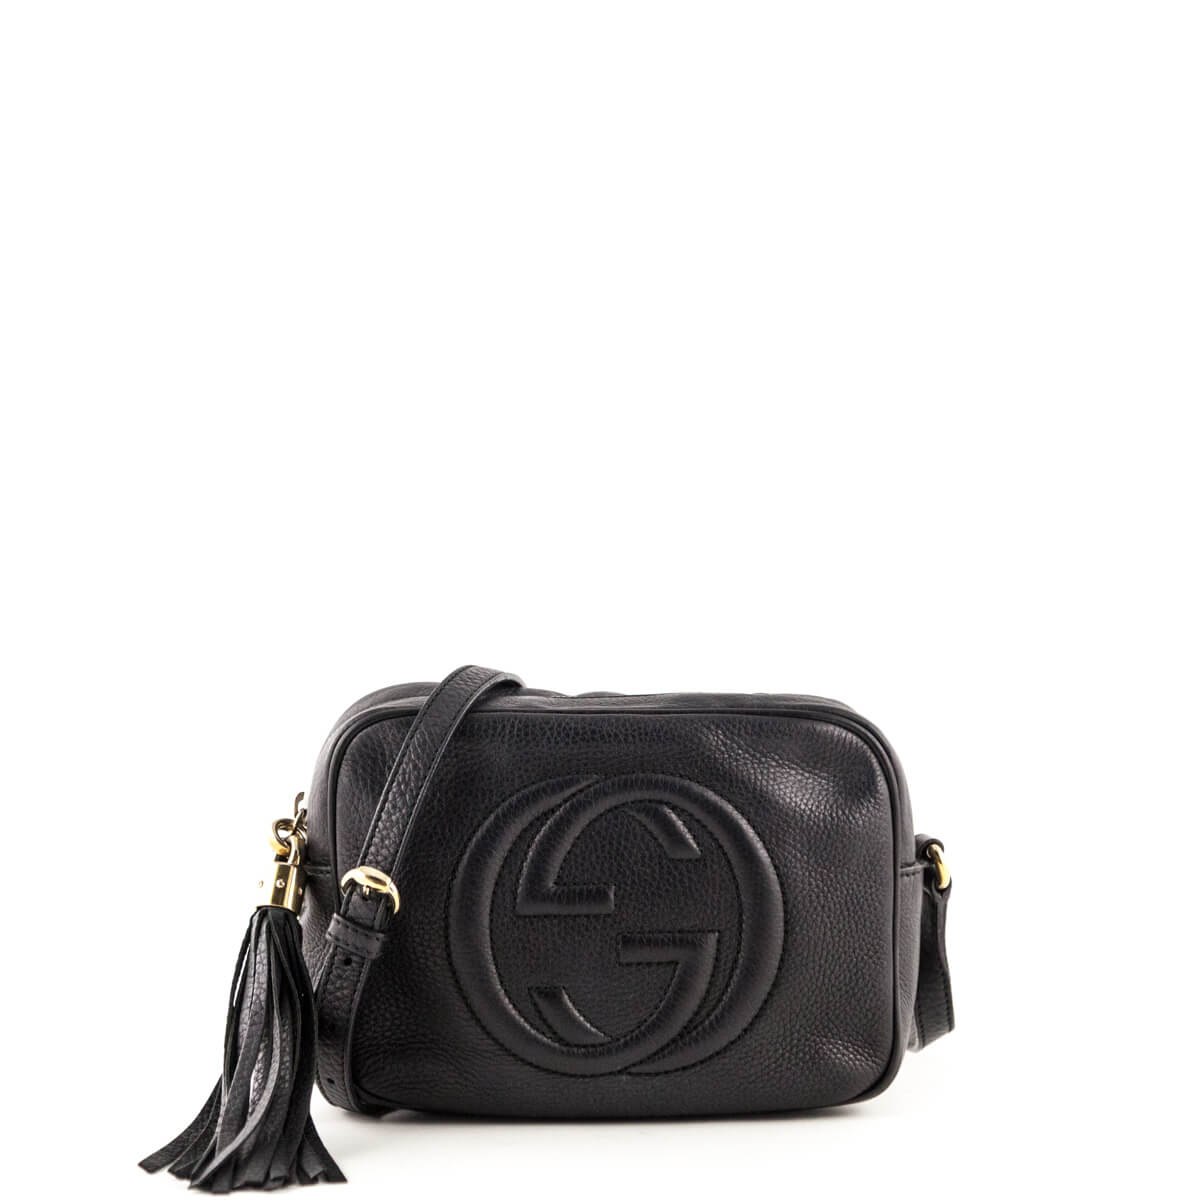 7d79606889feac Gucci Anthracite Soho Disco - LOVE that BAG - Preowned Authentic Designer  Handbags ...